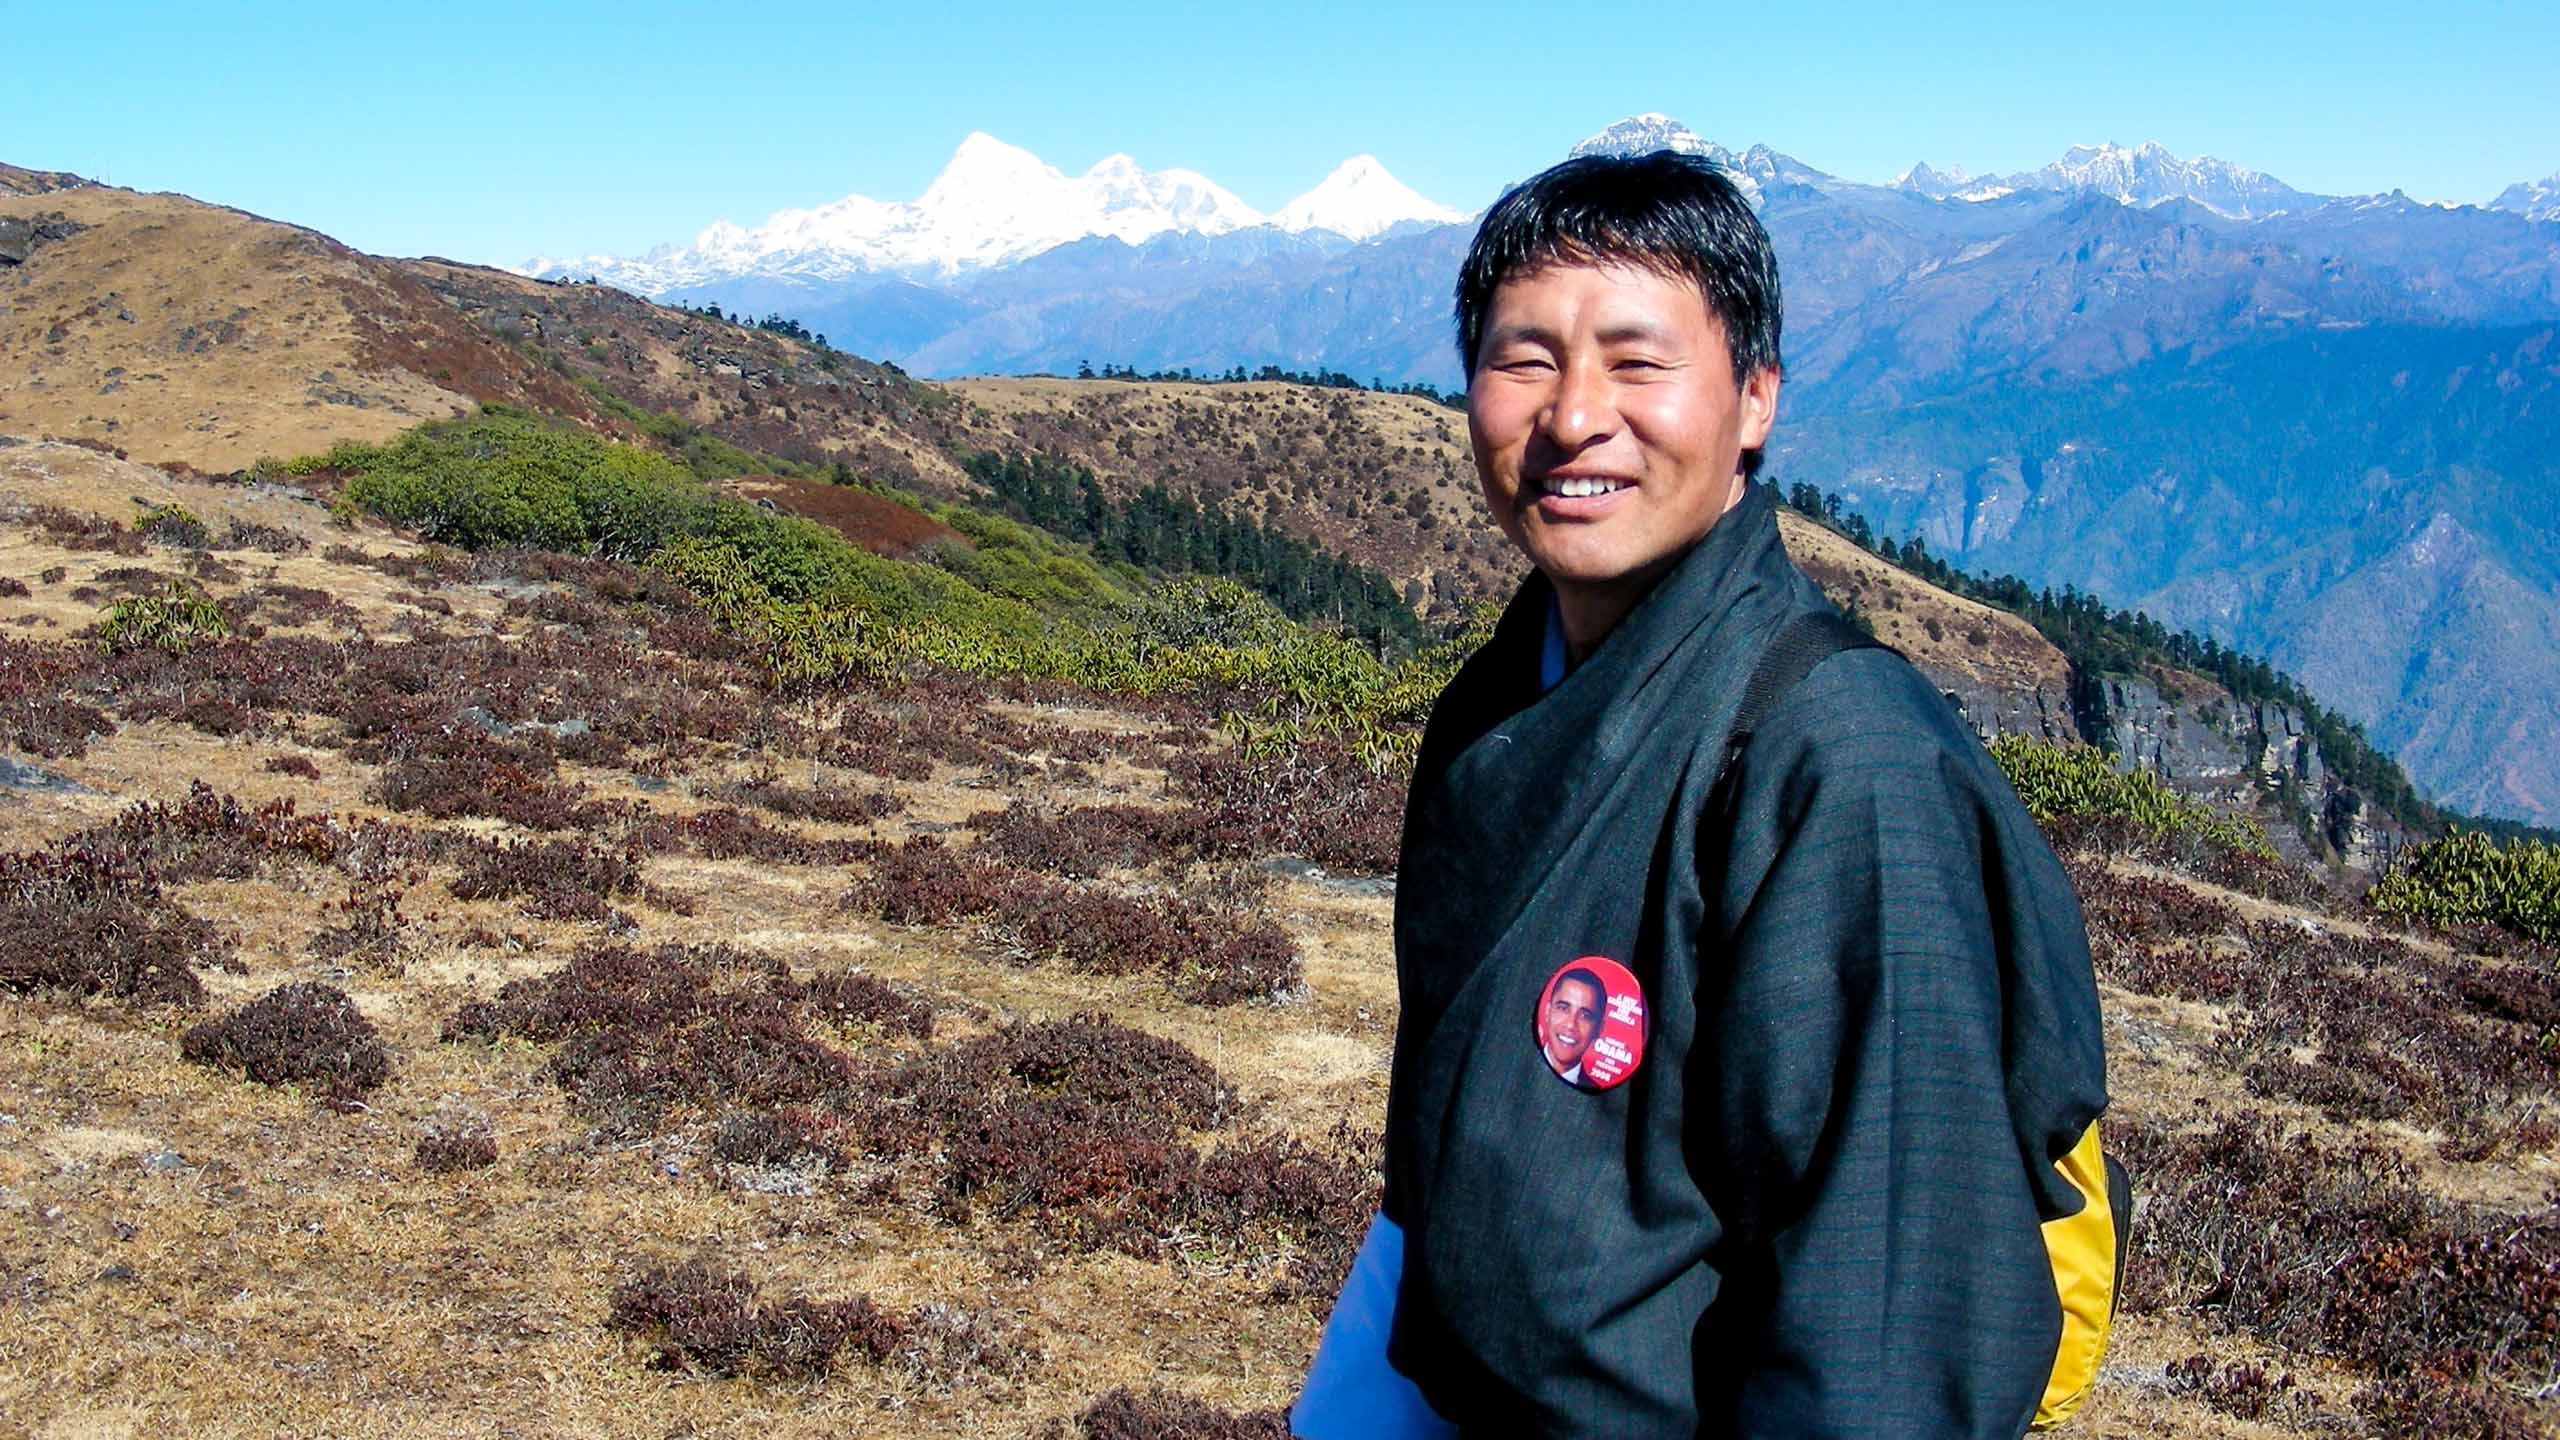 Bhutan man hikes through mountains